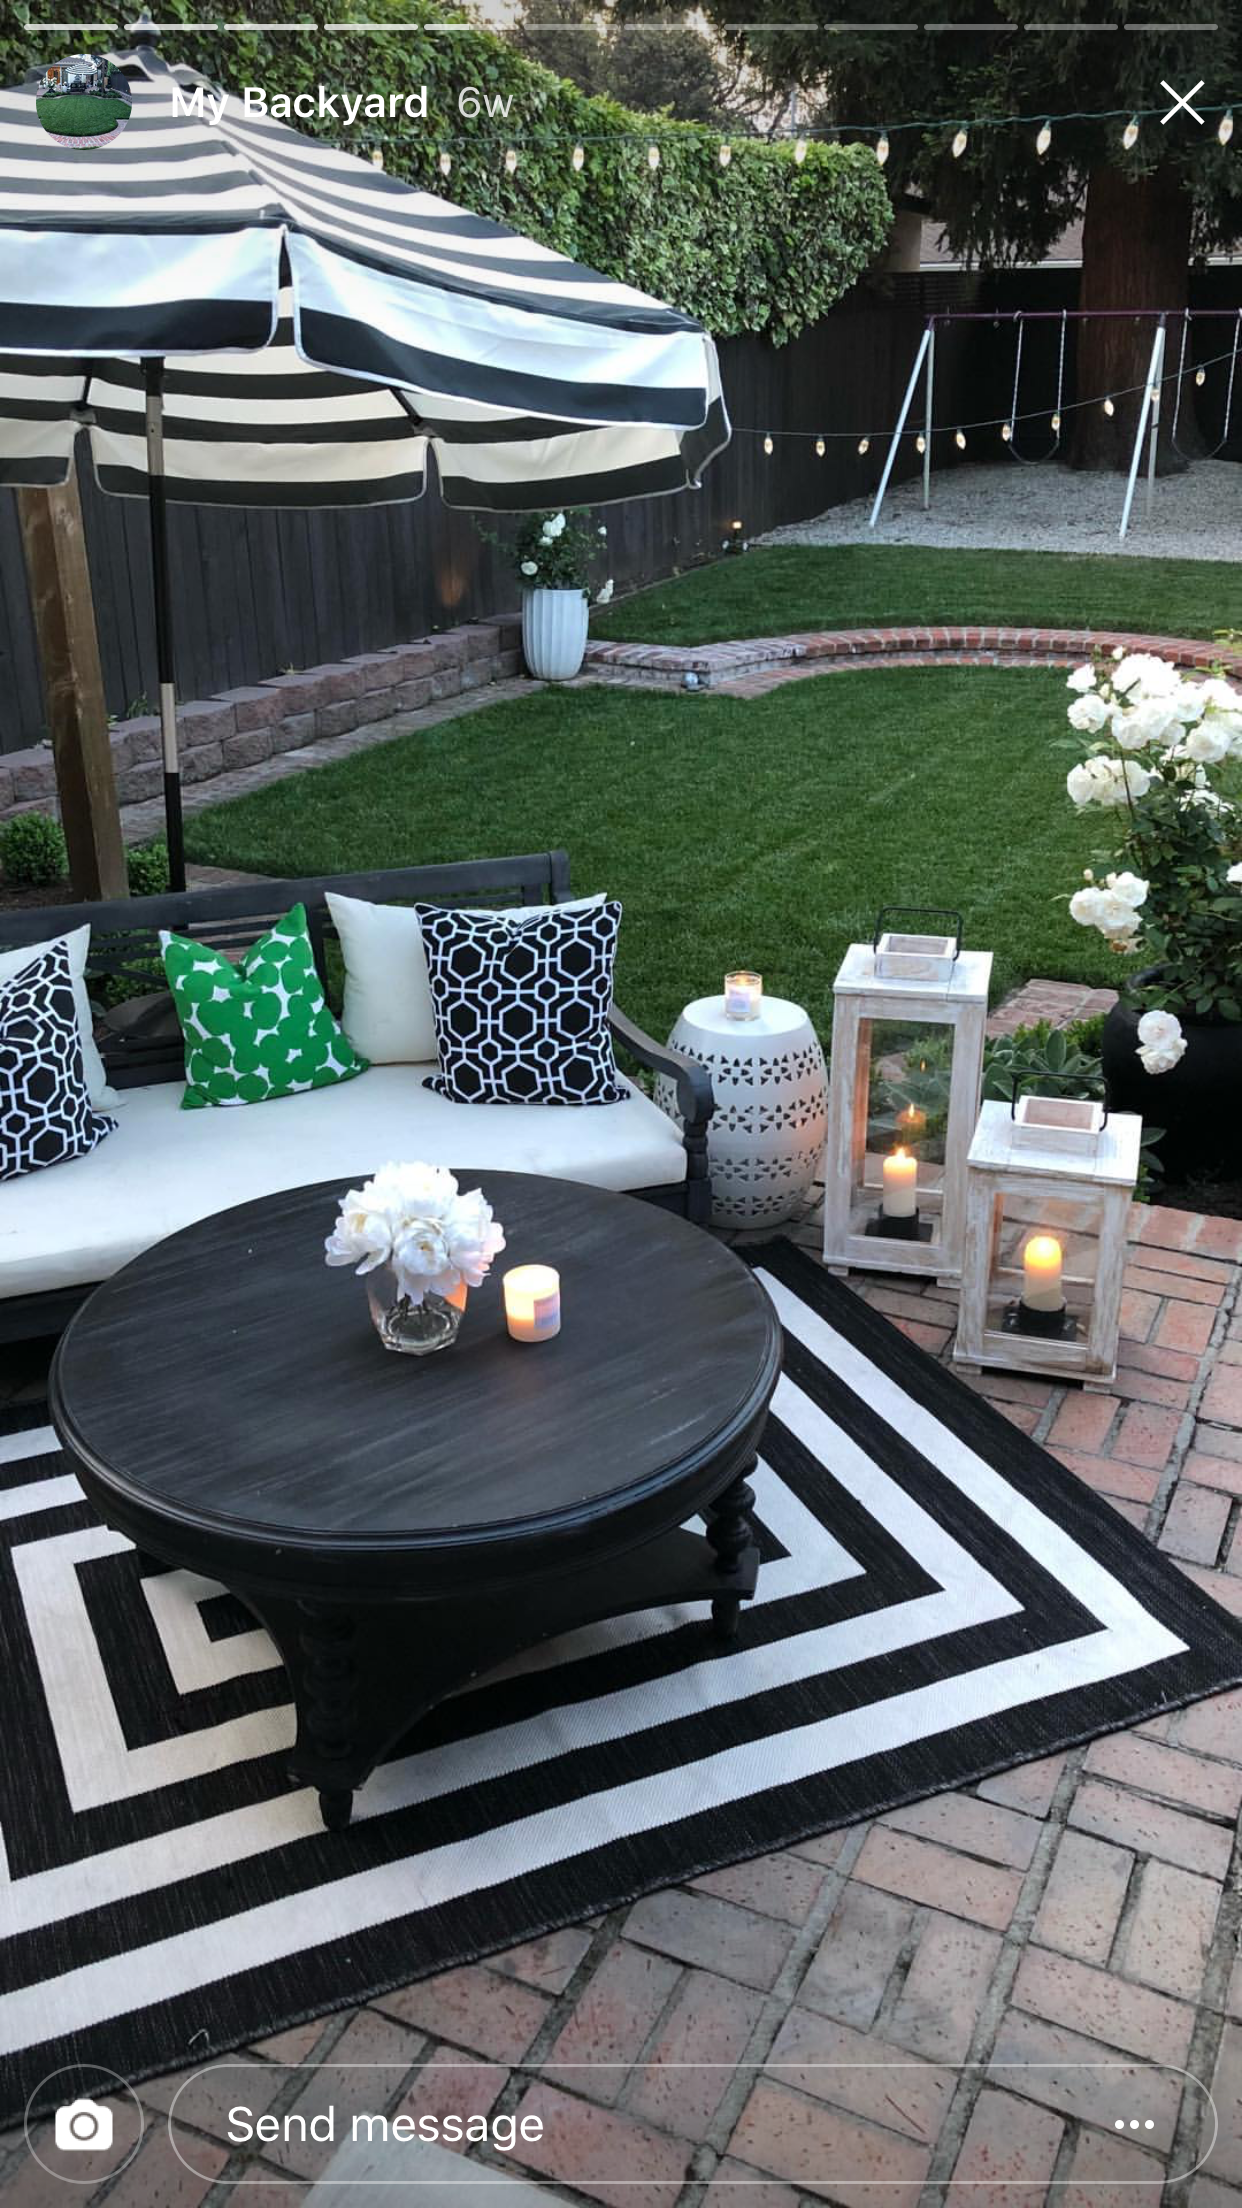 Image by Kris on Outdoor Living Space | Outdoor evening ... on Living Spaces Patio Set id=91205